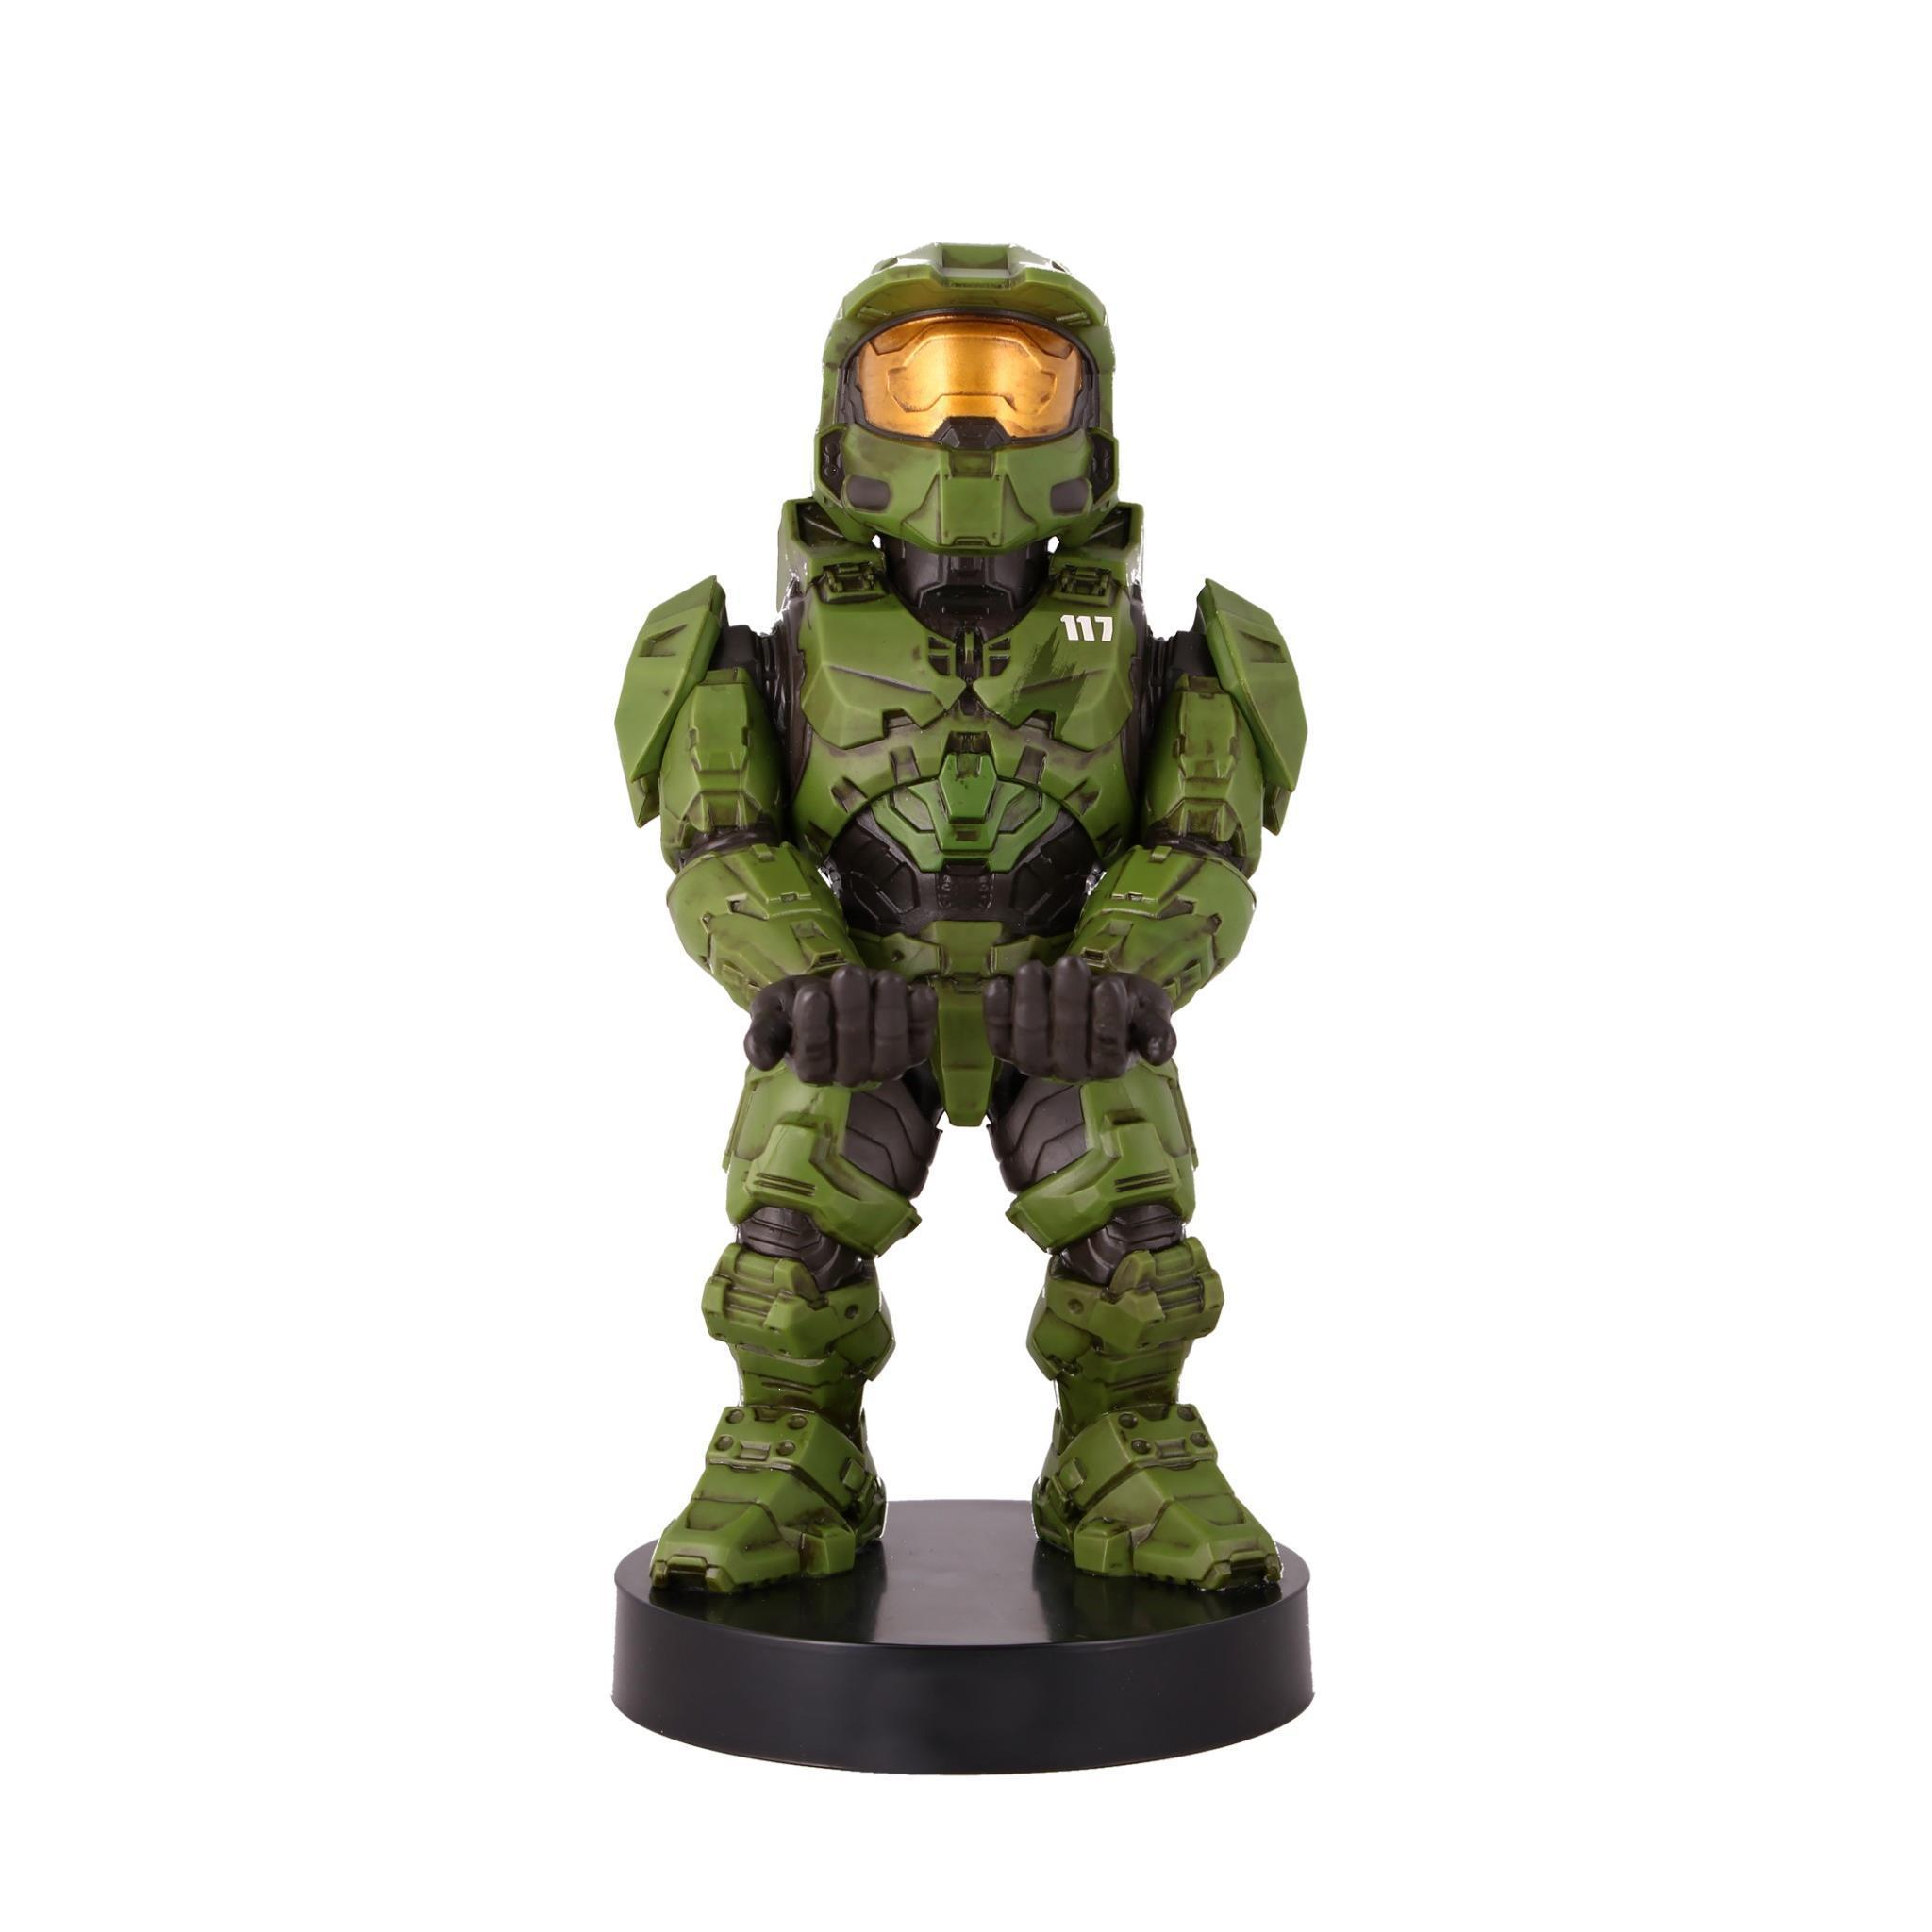 Cable Guys – Halo – Master Chief Infinite Controller Holder